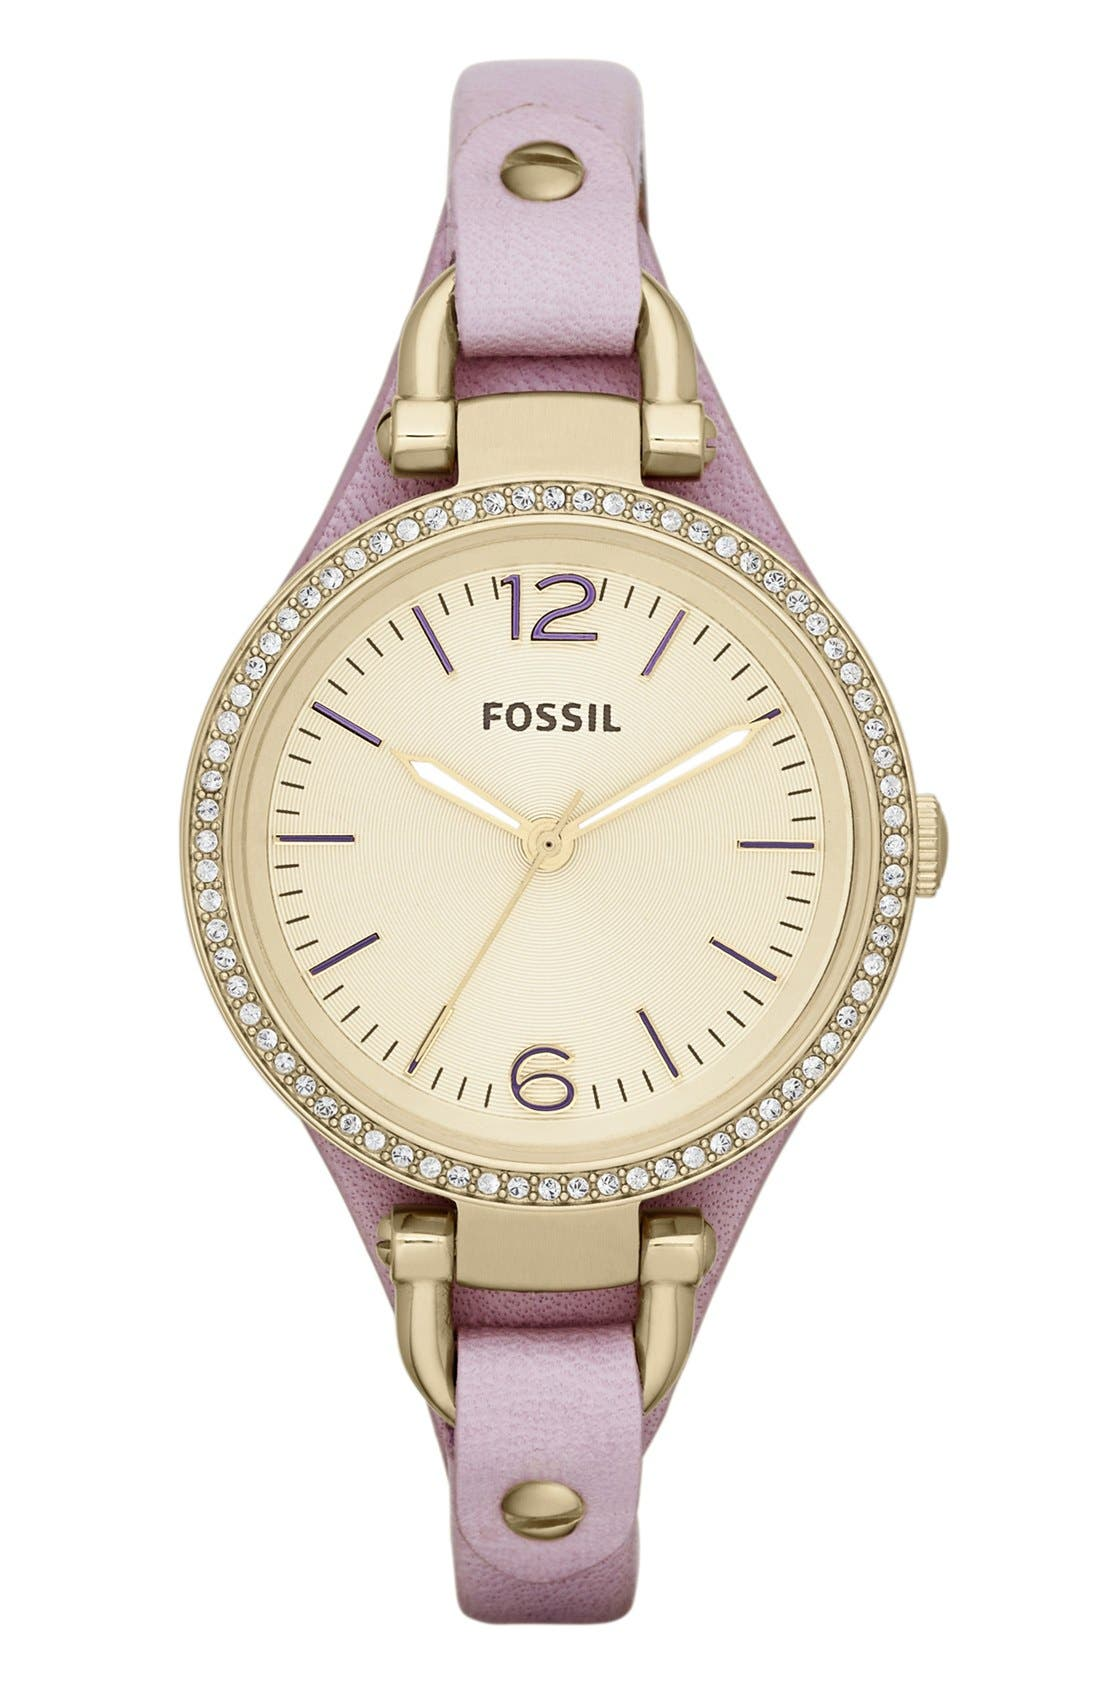 Alternate Image 1 Selected - Fossil 'Georgia' Crystal Bezel Leather Strap Watch, 32mm